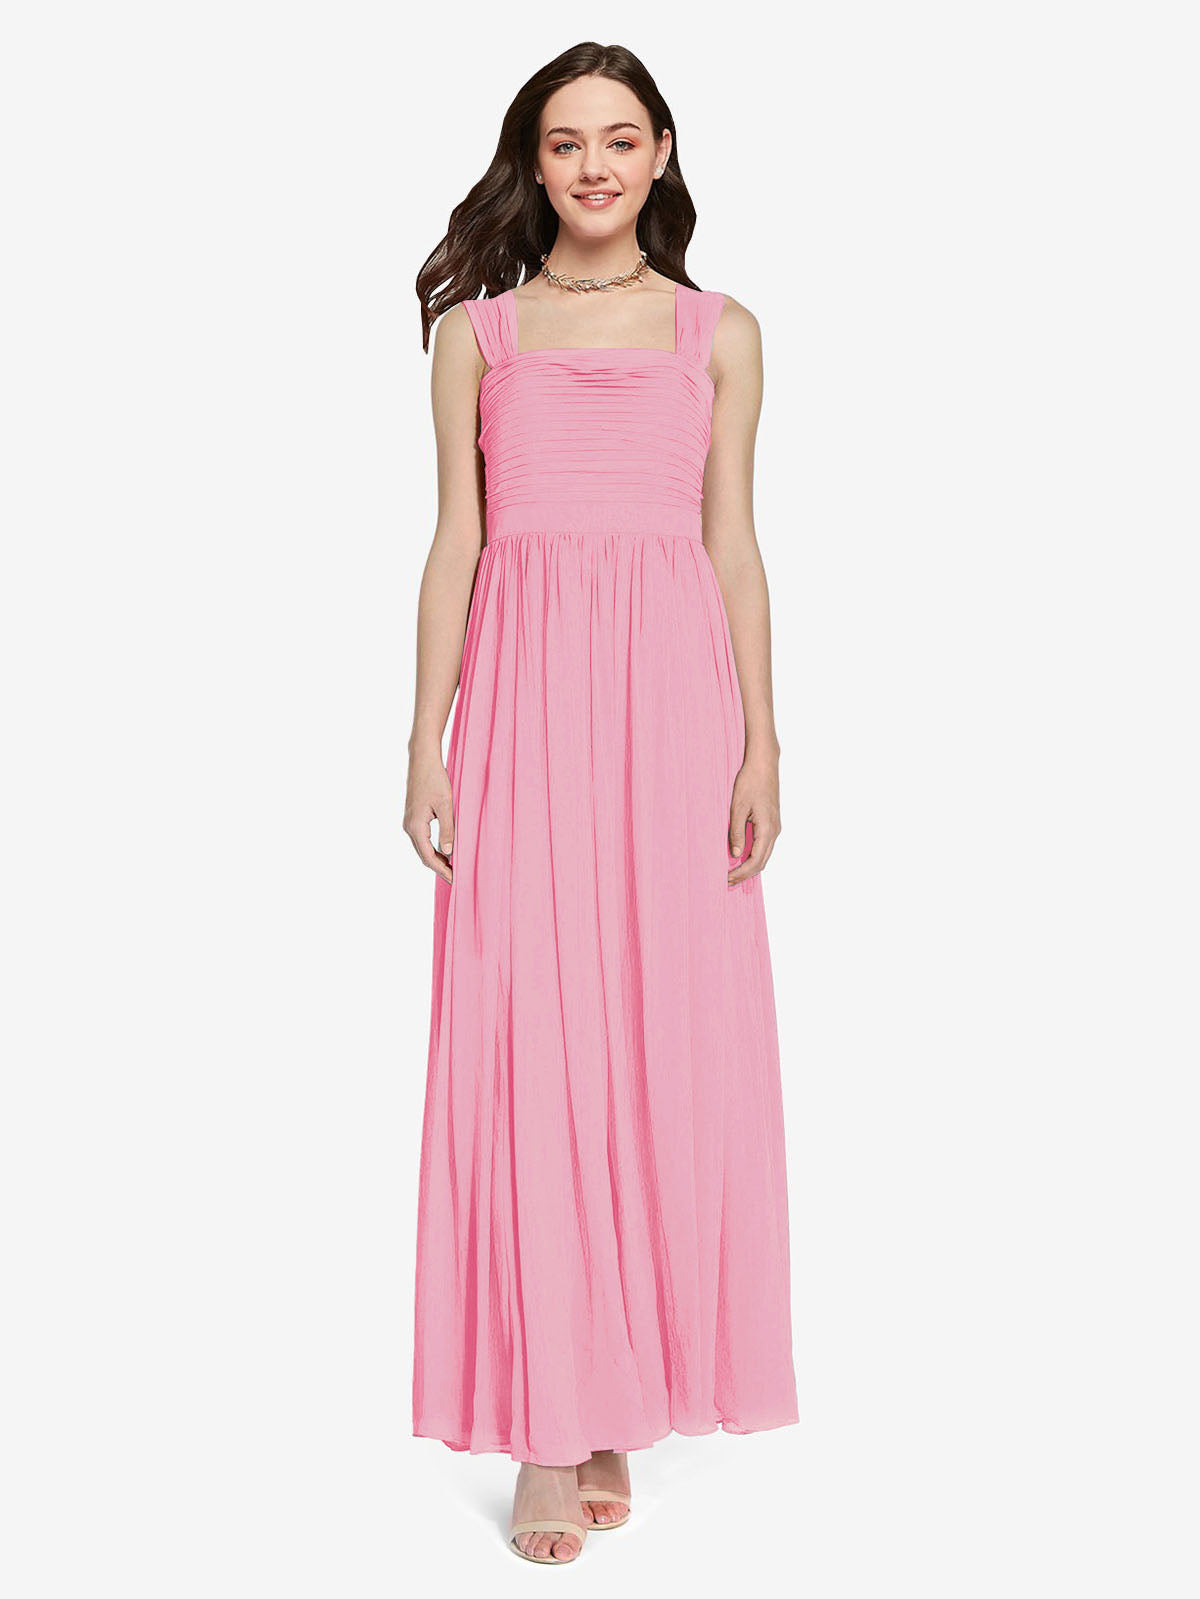 Long A-Line Square Sleeveless Hot Pink Chiffon Bridesmaid Dress Aldridge